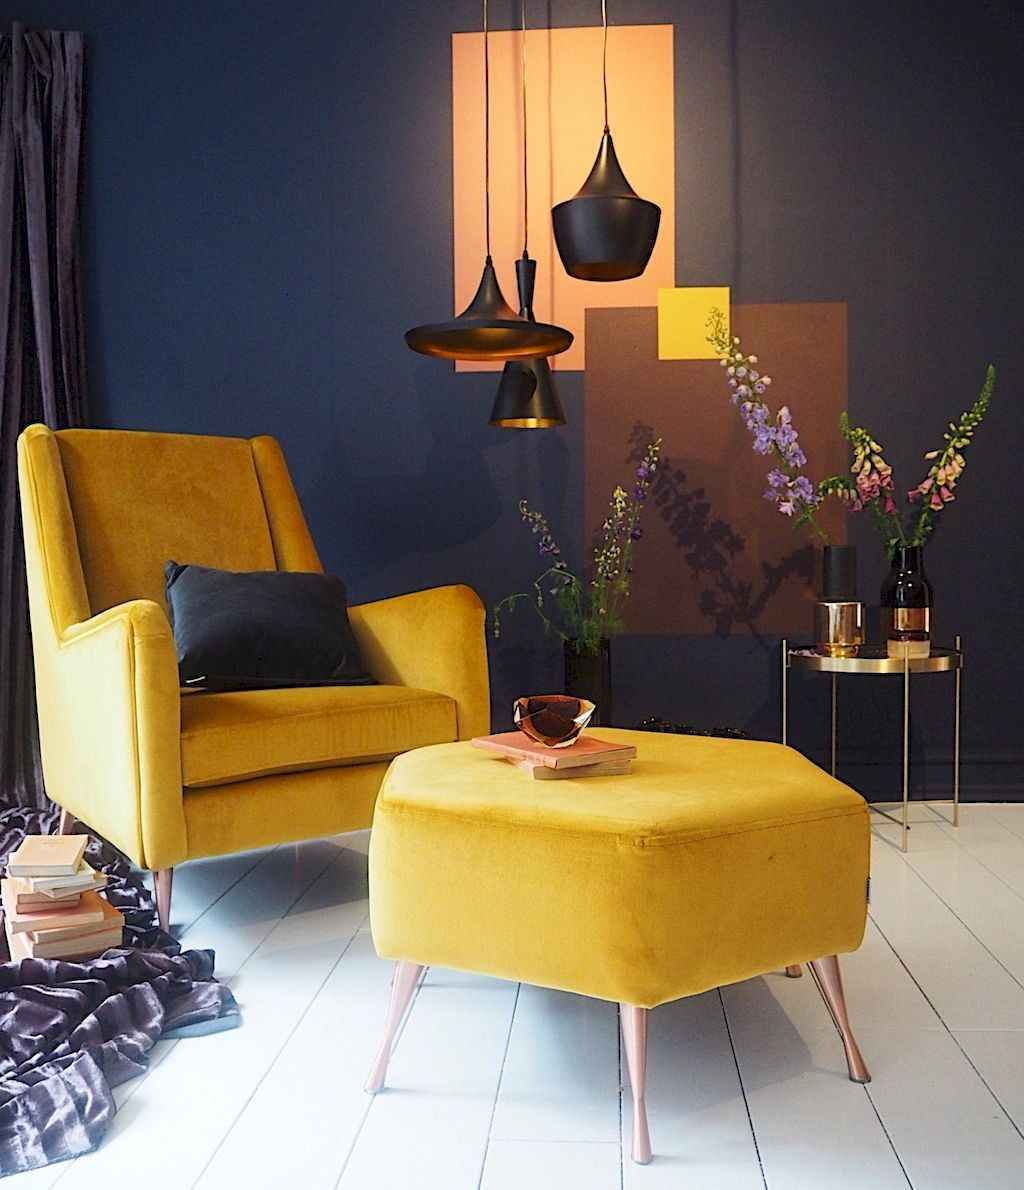 01 Beautiful Yellow Sofa for Living Room Decor Ideas in ...